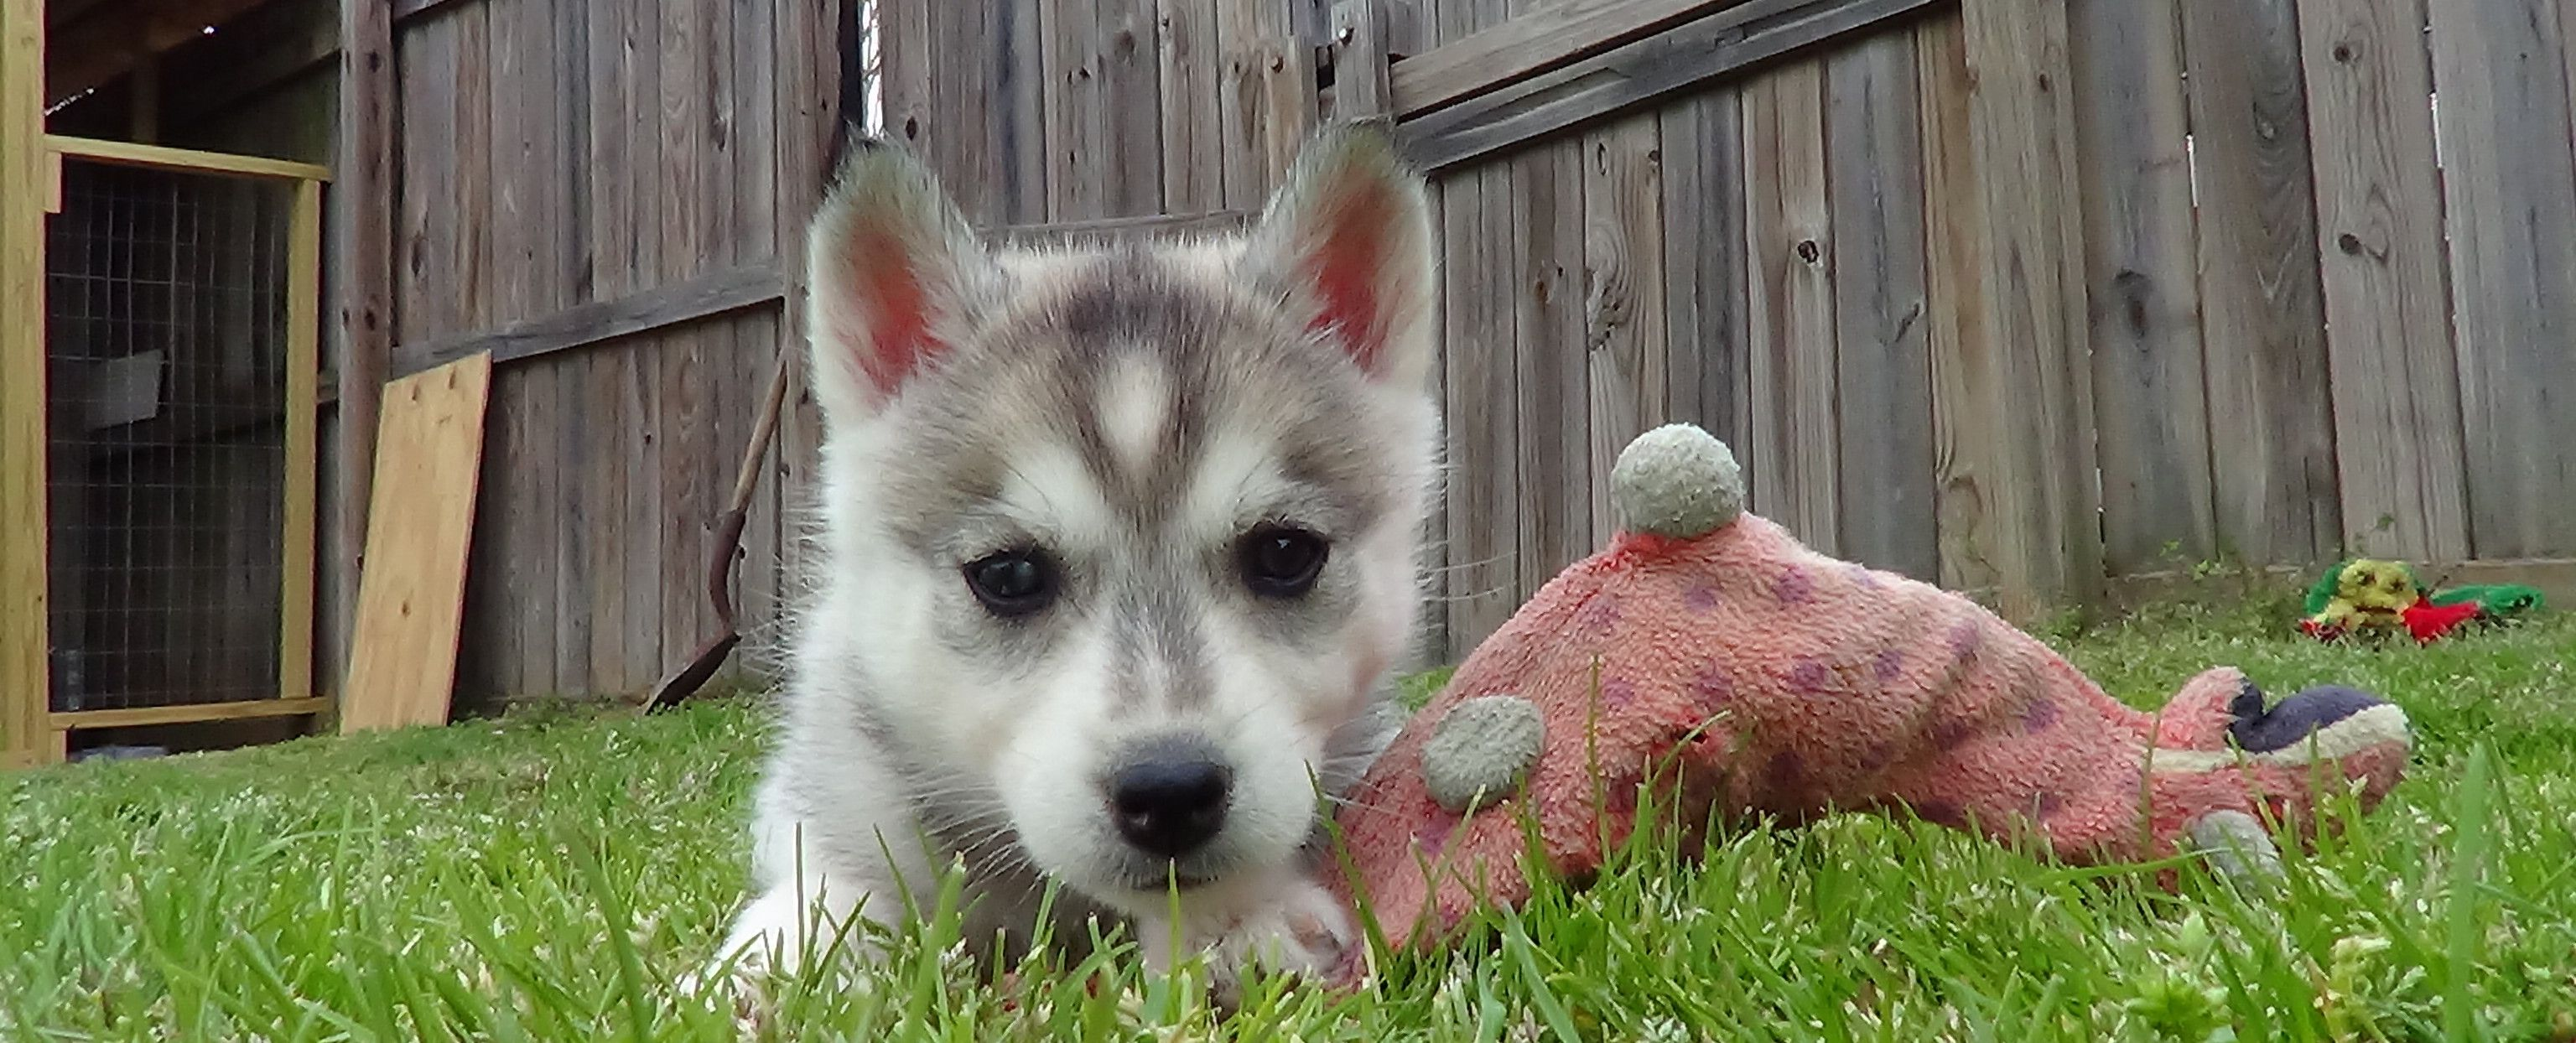 Husky Puppy Playing With Dino Toy Husky Puppies For Sale Cute